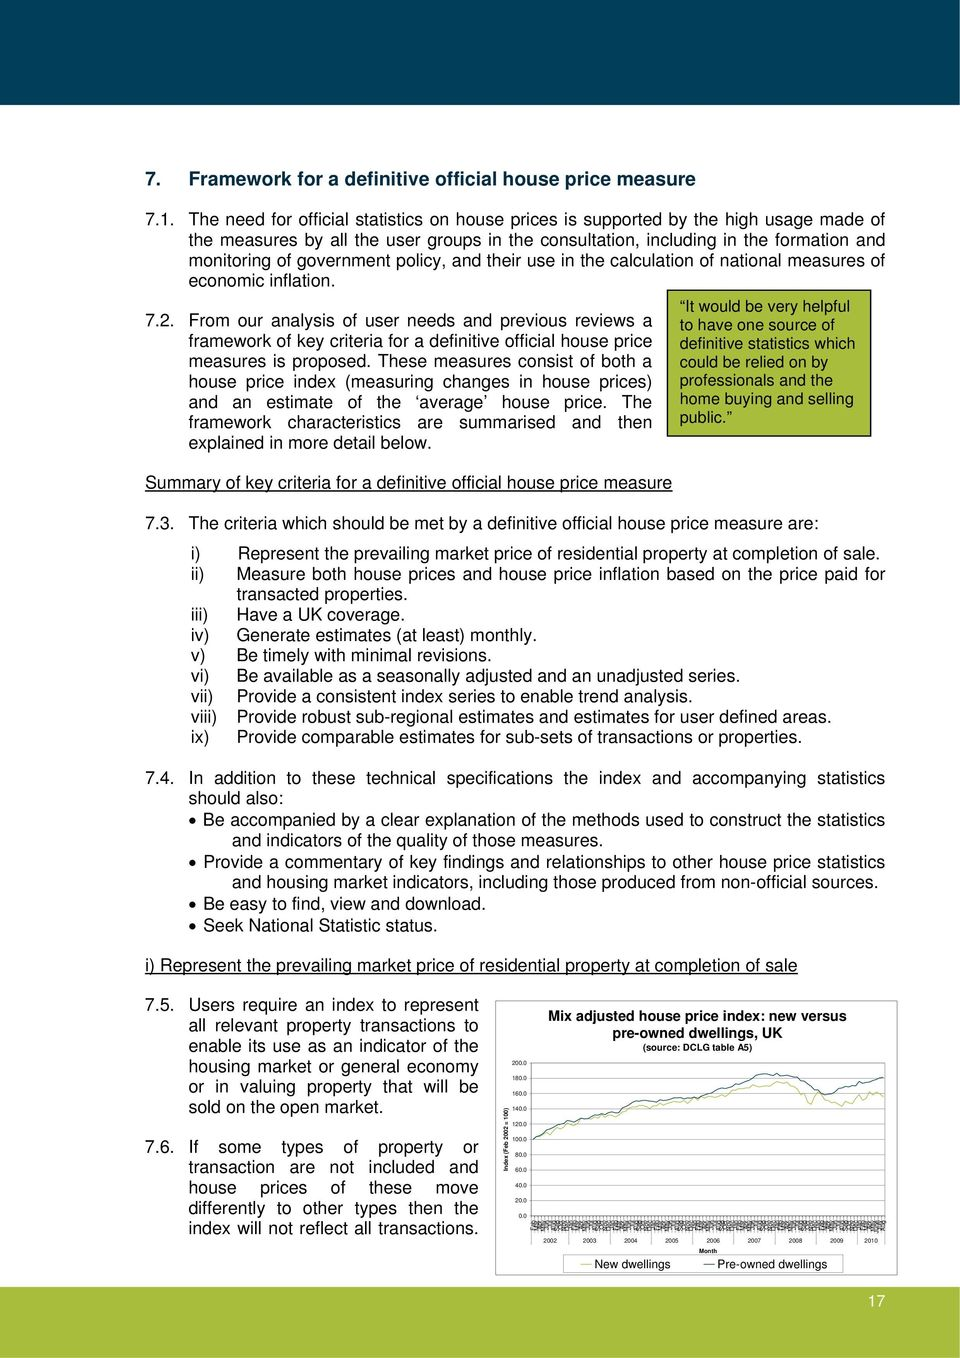 government policy, and their use in the calculation of national measures of economic inflation. 7.2.